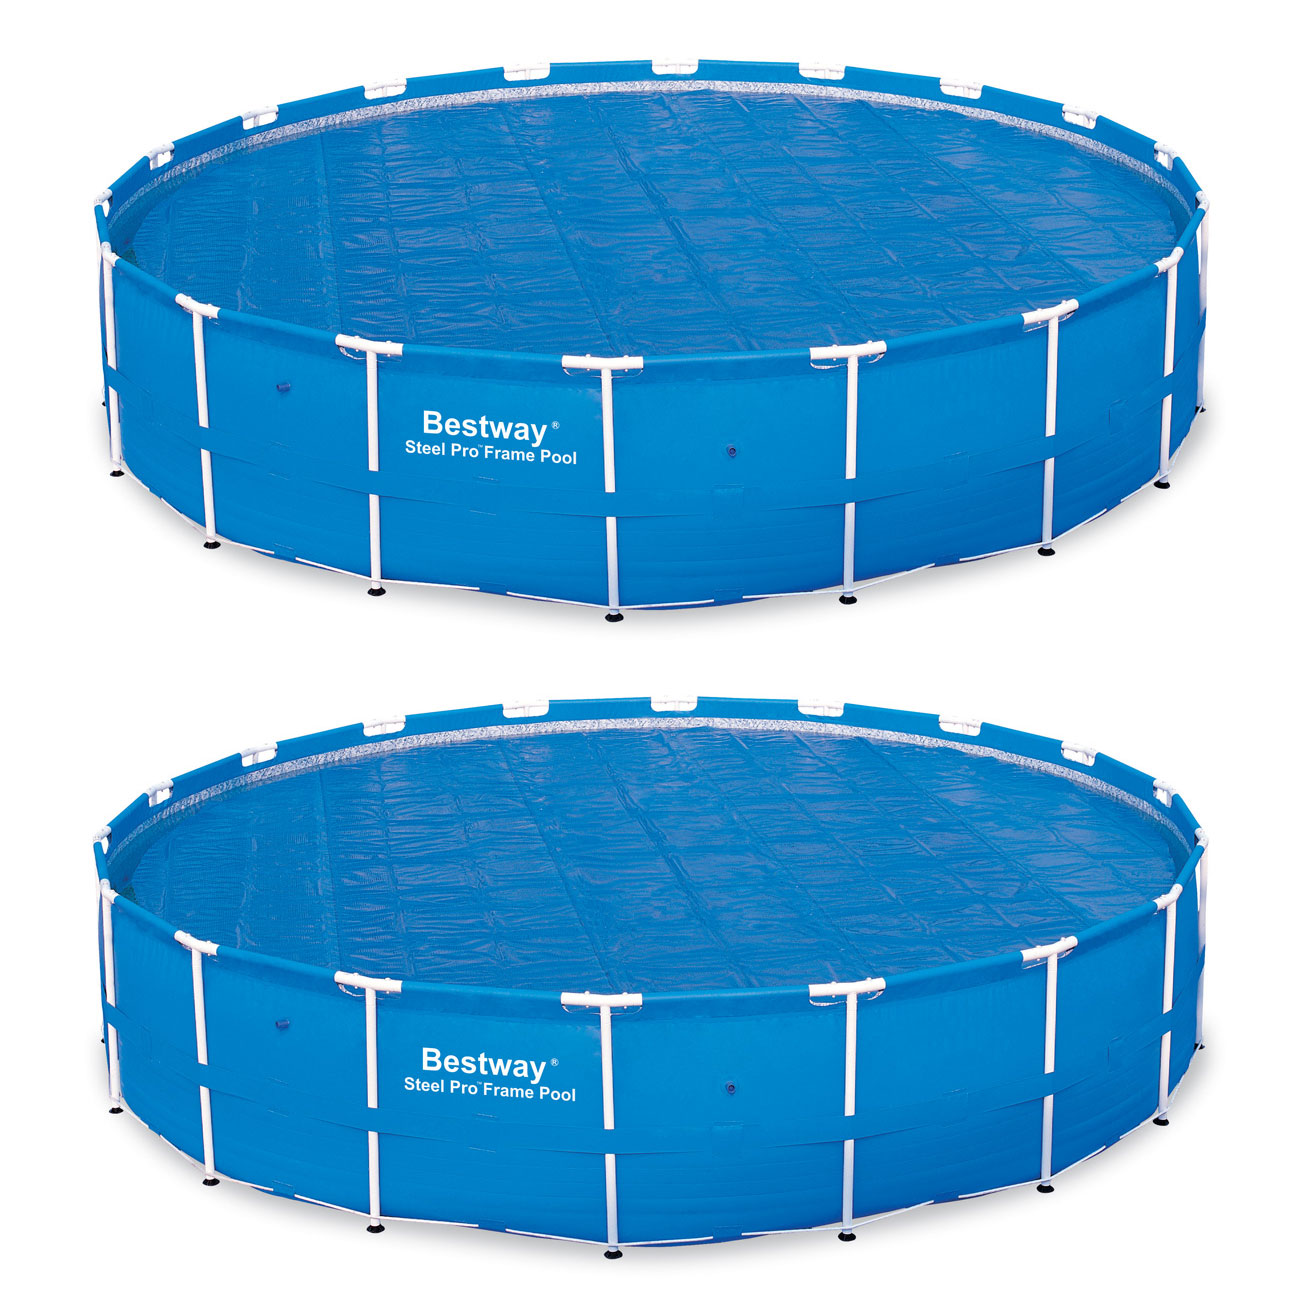 Details about Bestway 18 Foot Round Above Ground Swimming Pool Solar Heat  Cover (2 Pack)